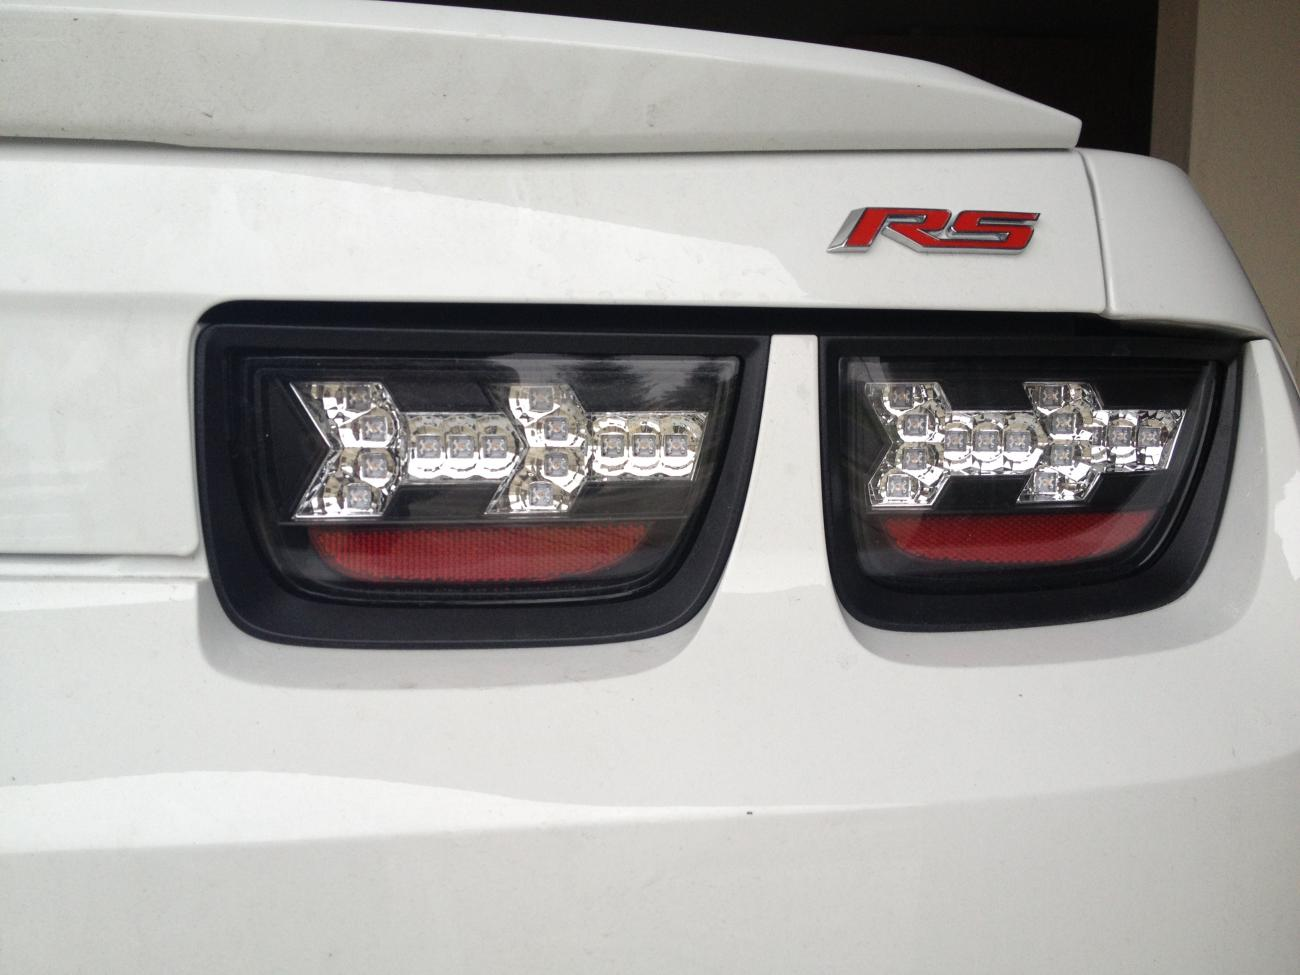 color match tail light bezel - Camaro5 Chevy Camaro Forum / Camaro ...